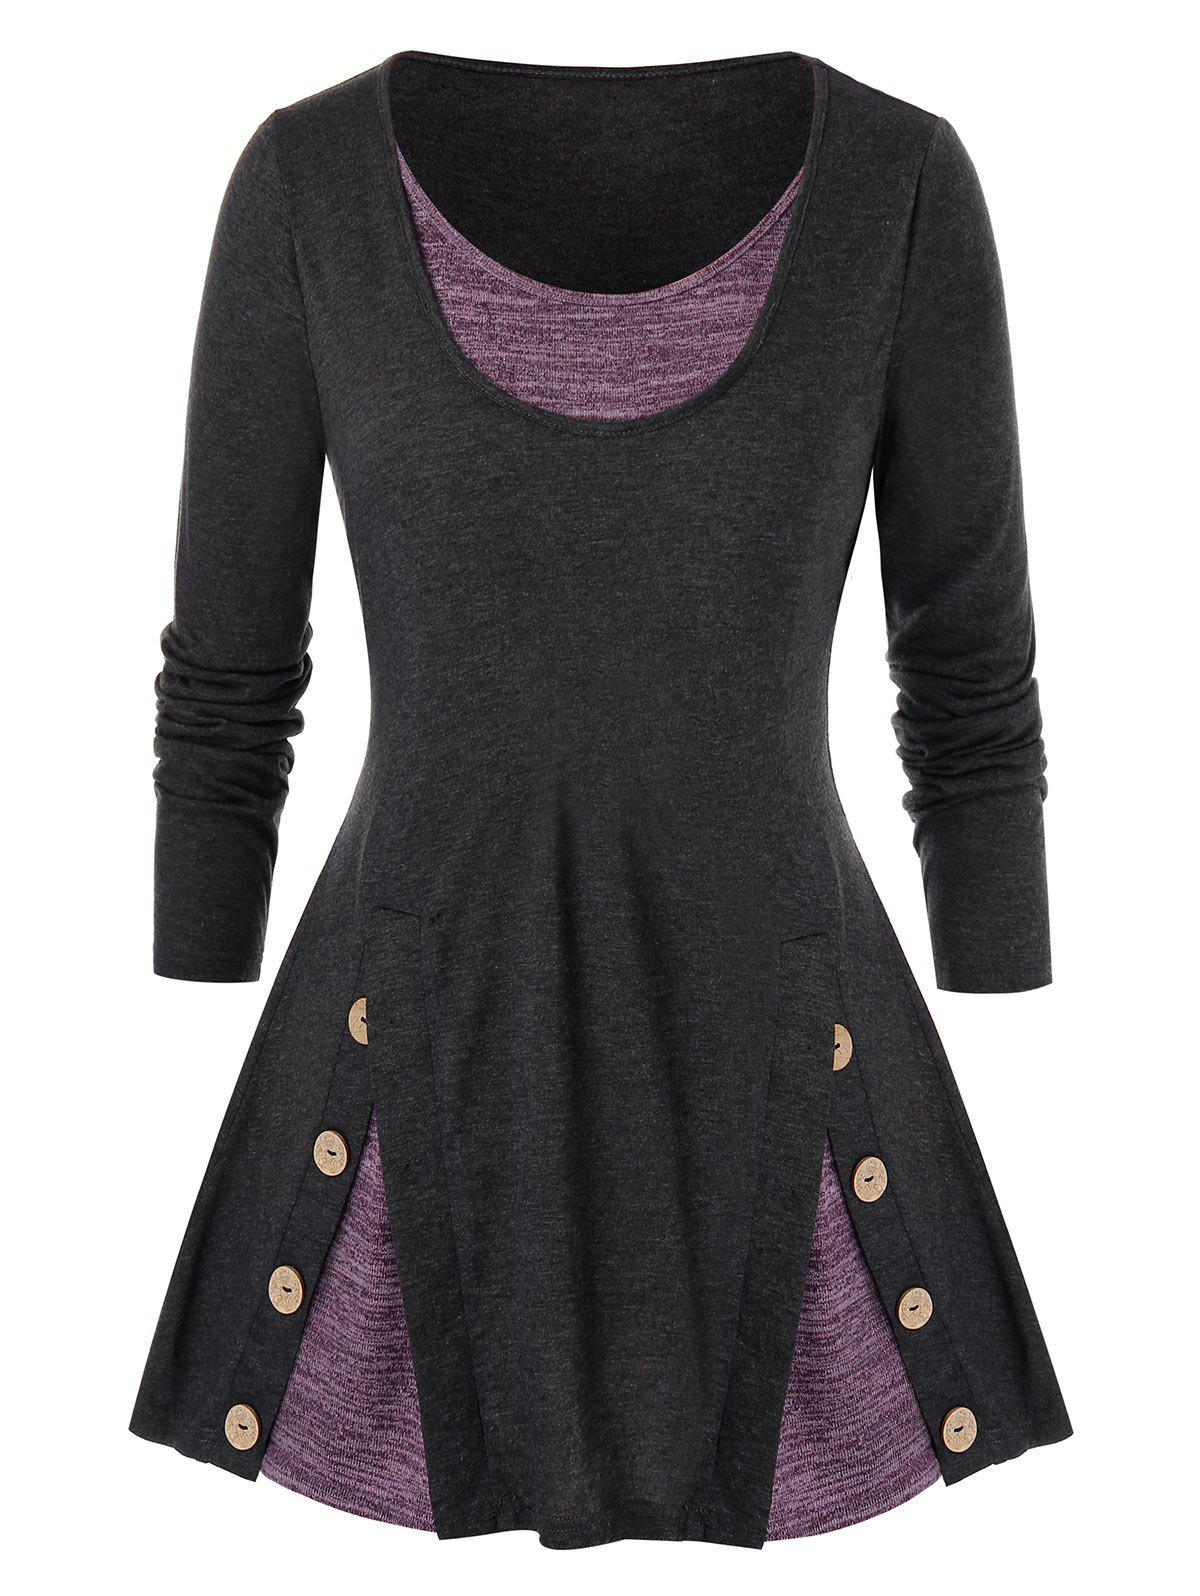 Plus Size Contrast Heathered Mock Button Faux Twinset T-shirt - DARK GRAY 4X